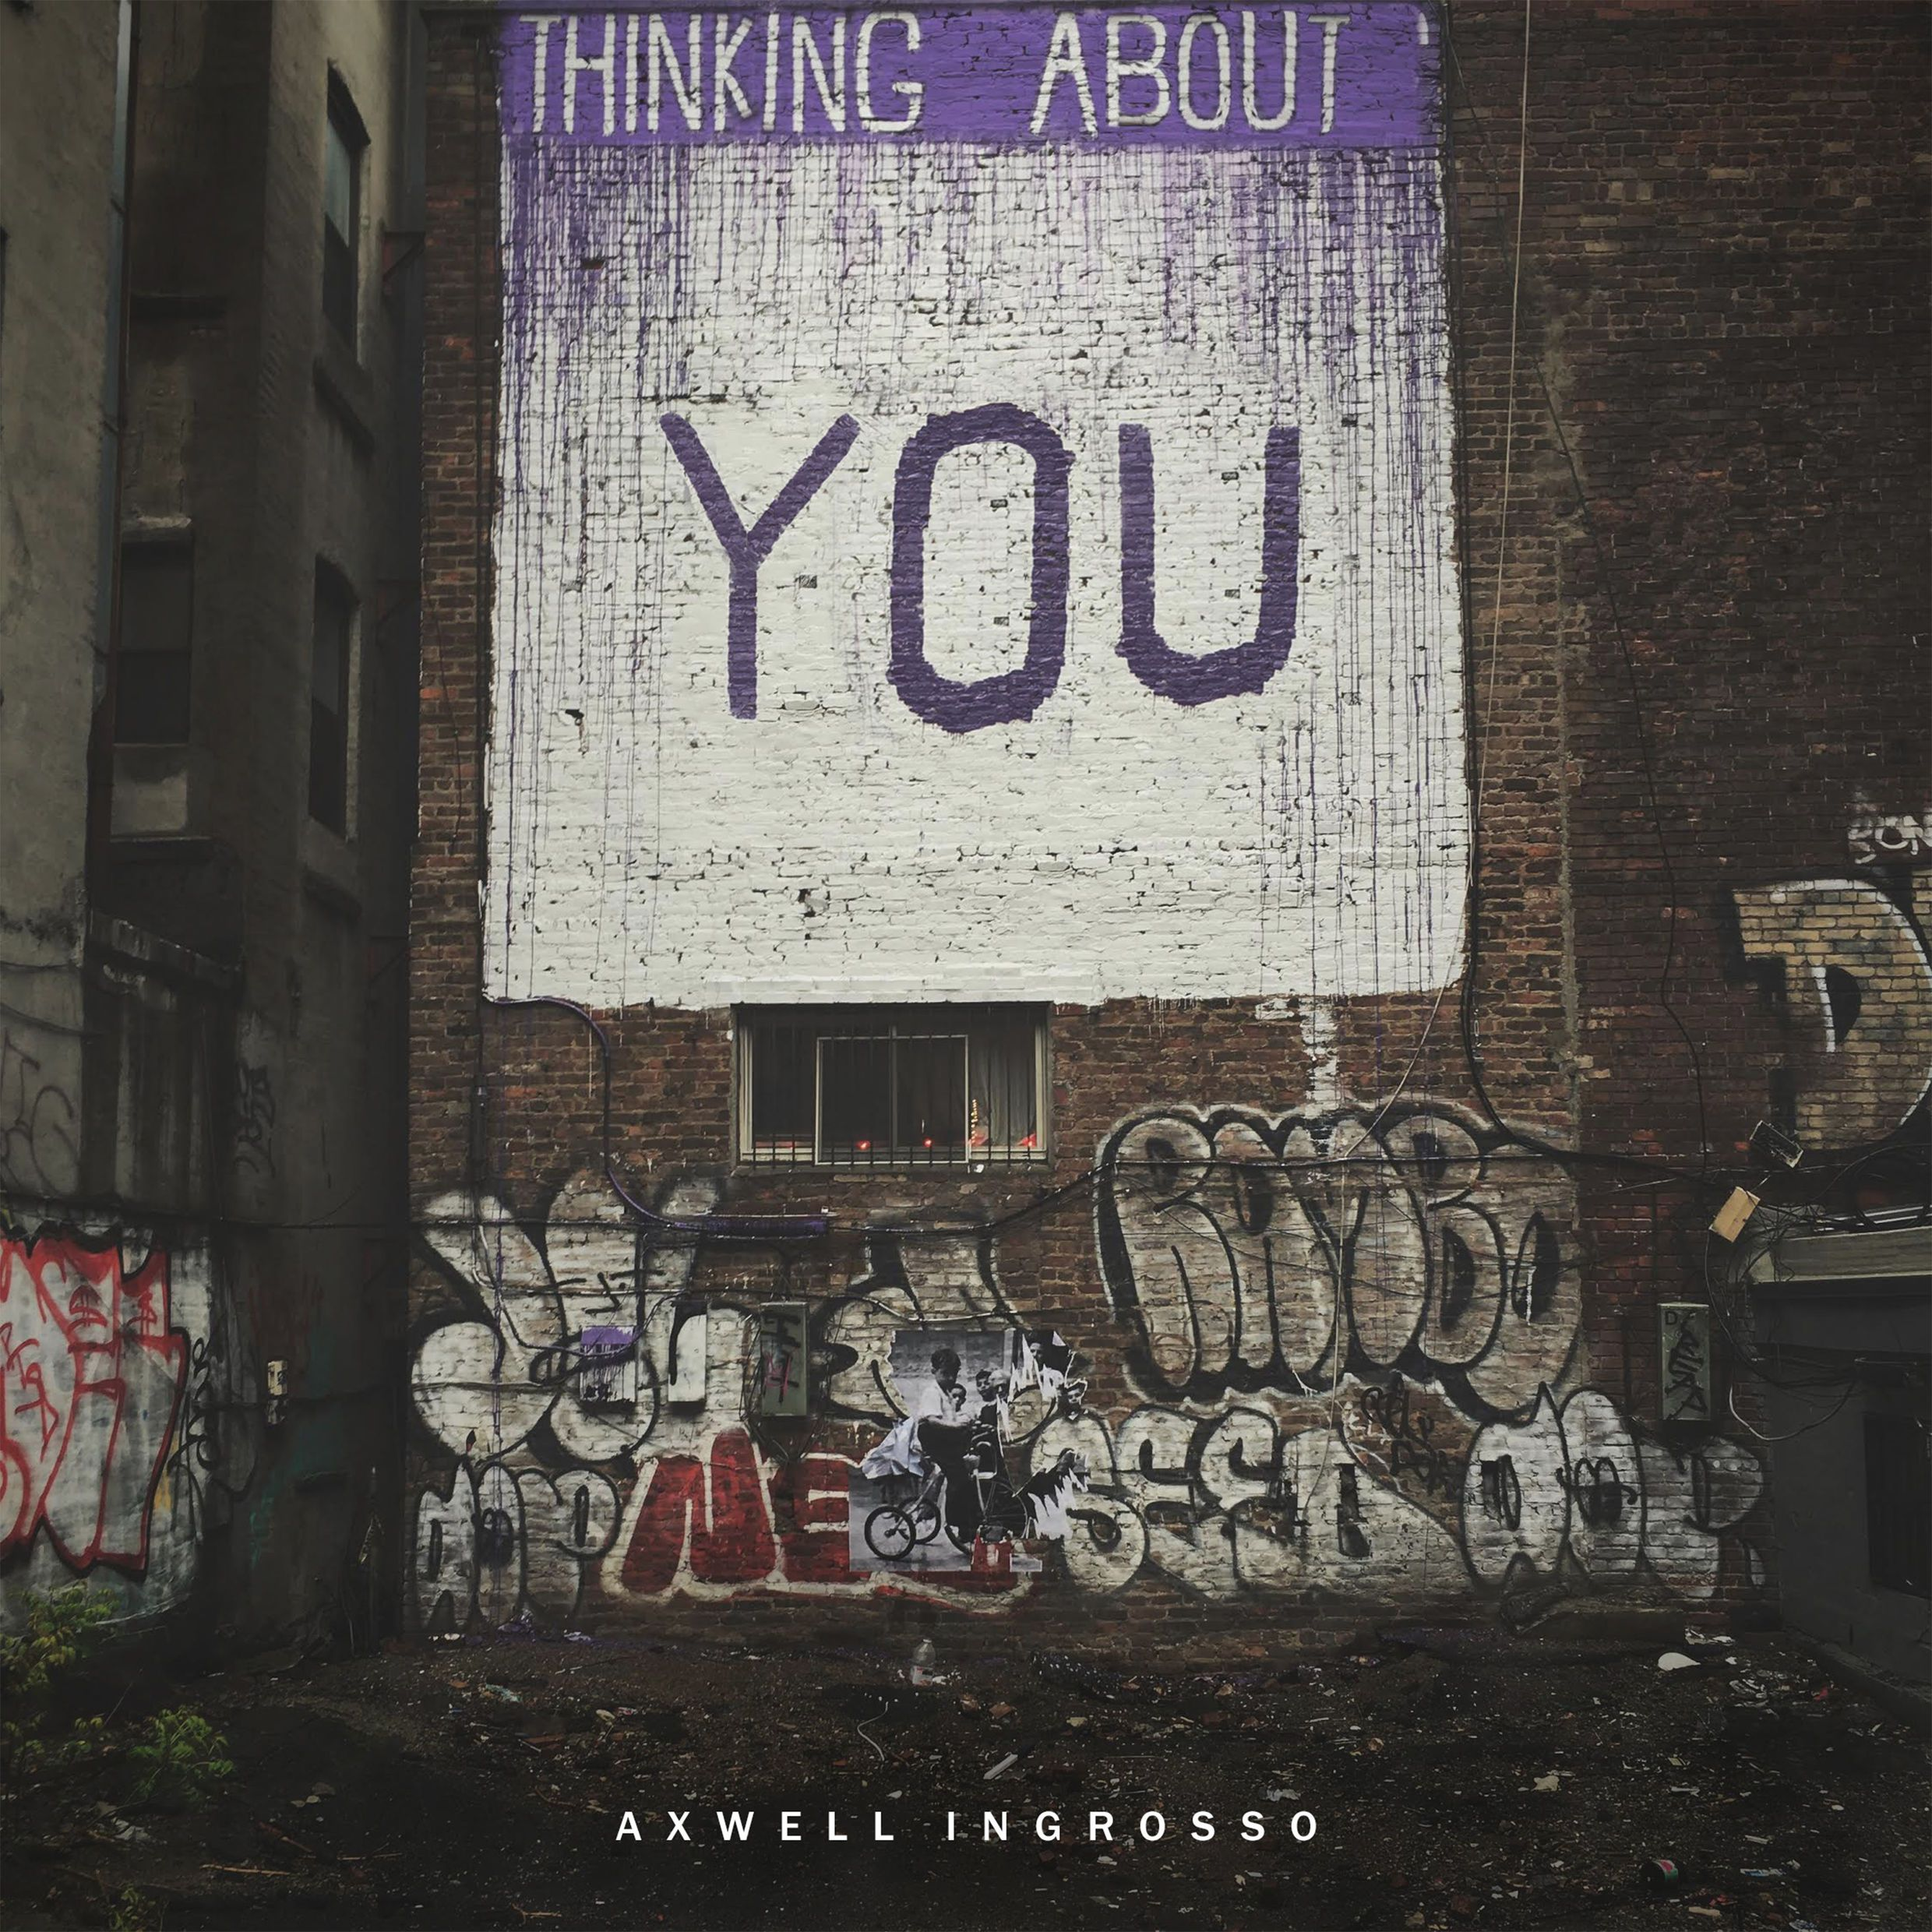 Axwell, Ingrosso – Thinking About You (single cover art)